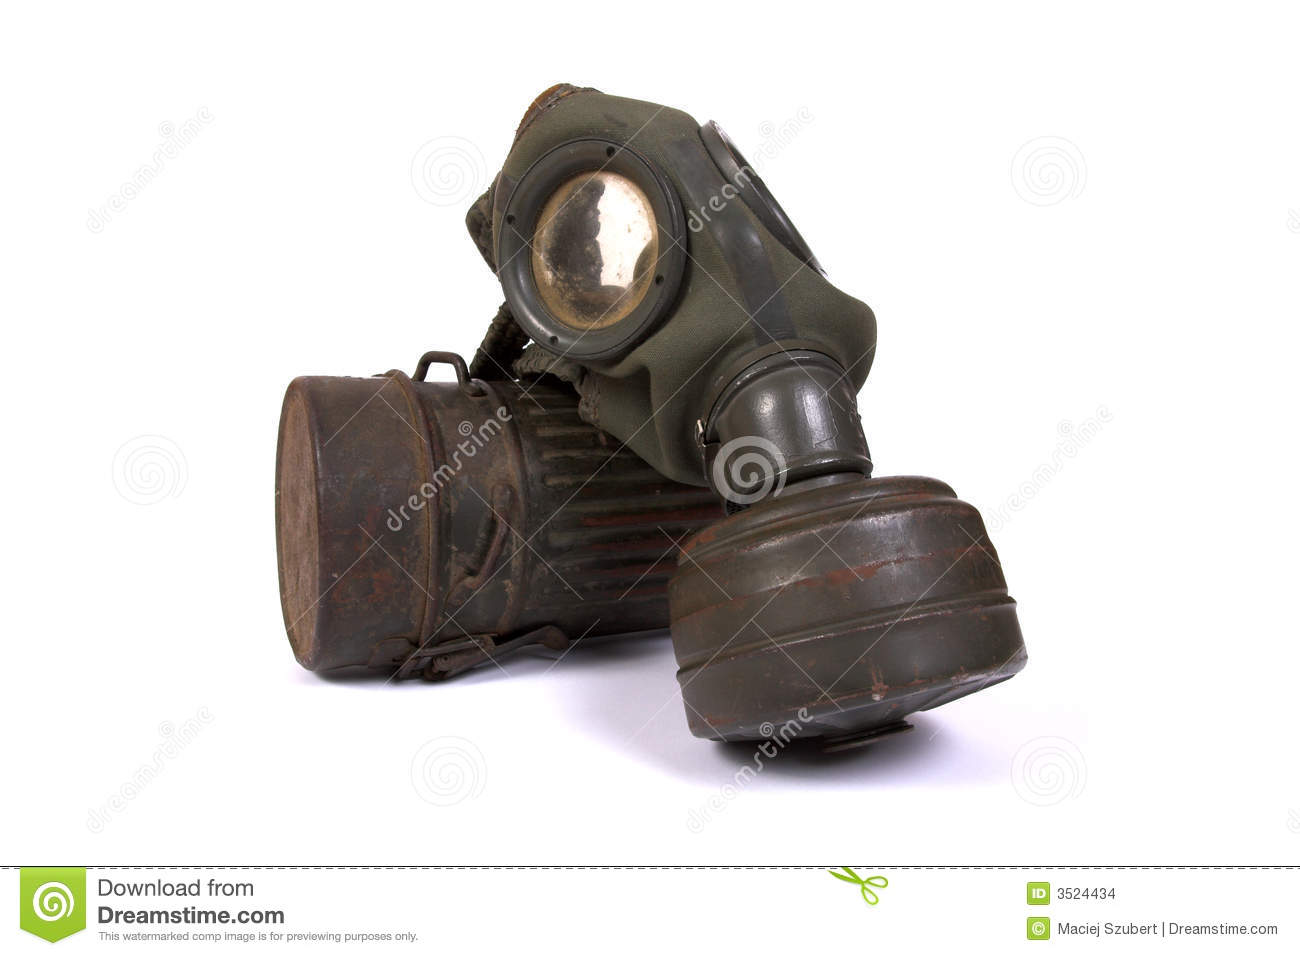 103934703875184402 further Stock Images World War Ii Gas Mask 3 Image3524434 furthermore Pole Barn Living Quarters Plans as well Achieve Industrial Look Without Concrete Screed Sydney Bar Did It likewise 112153 Grill Vent Hood Ideas Sunroom Traditional With Wall Mount Tv Contemporary Outdoor Grills. on vintage greenhouse plans